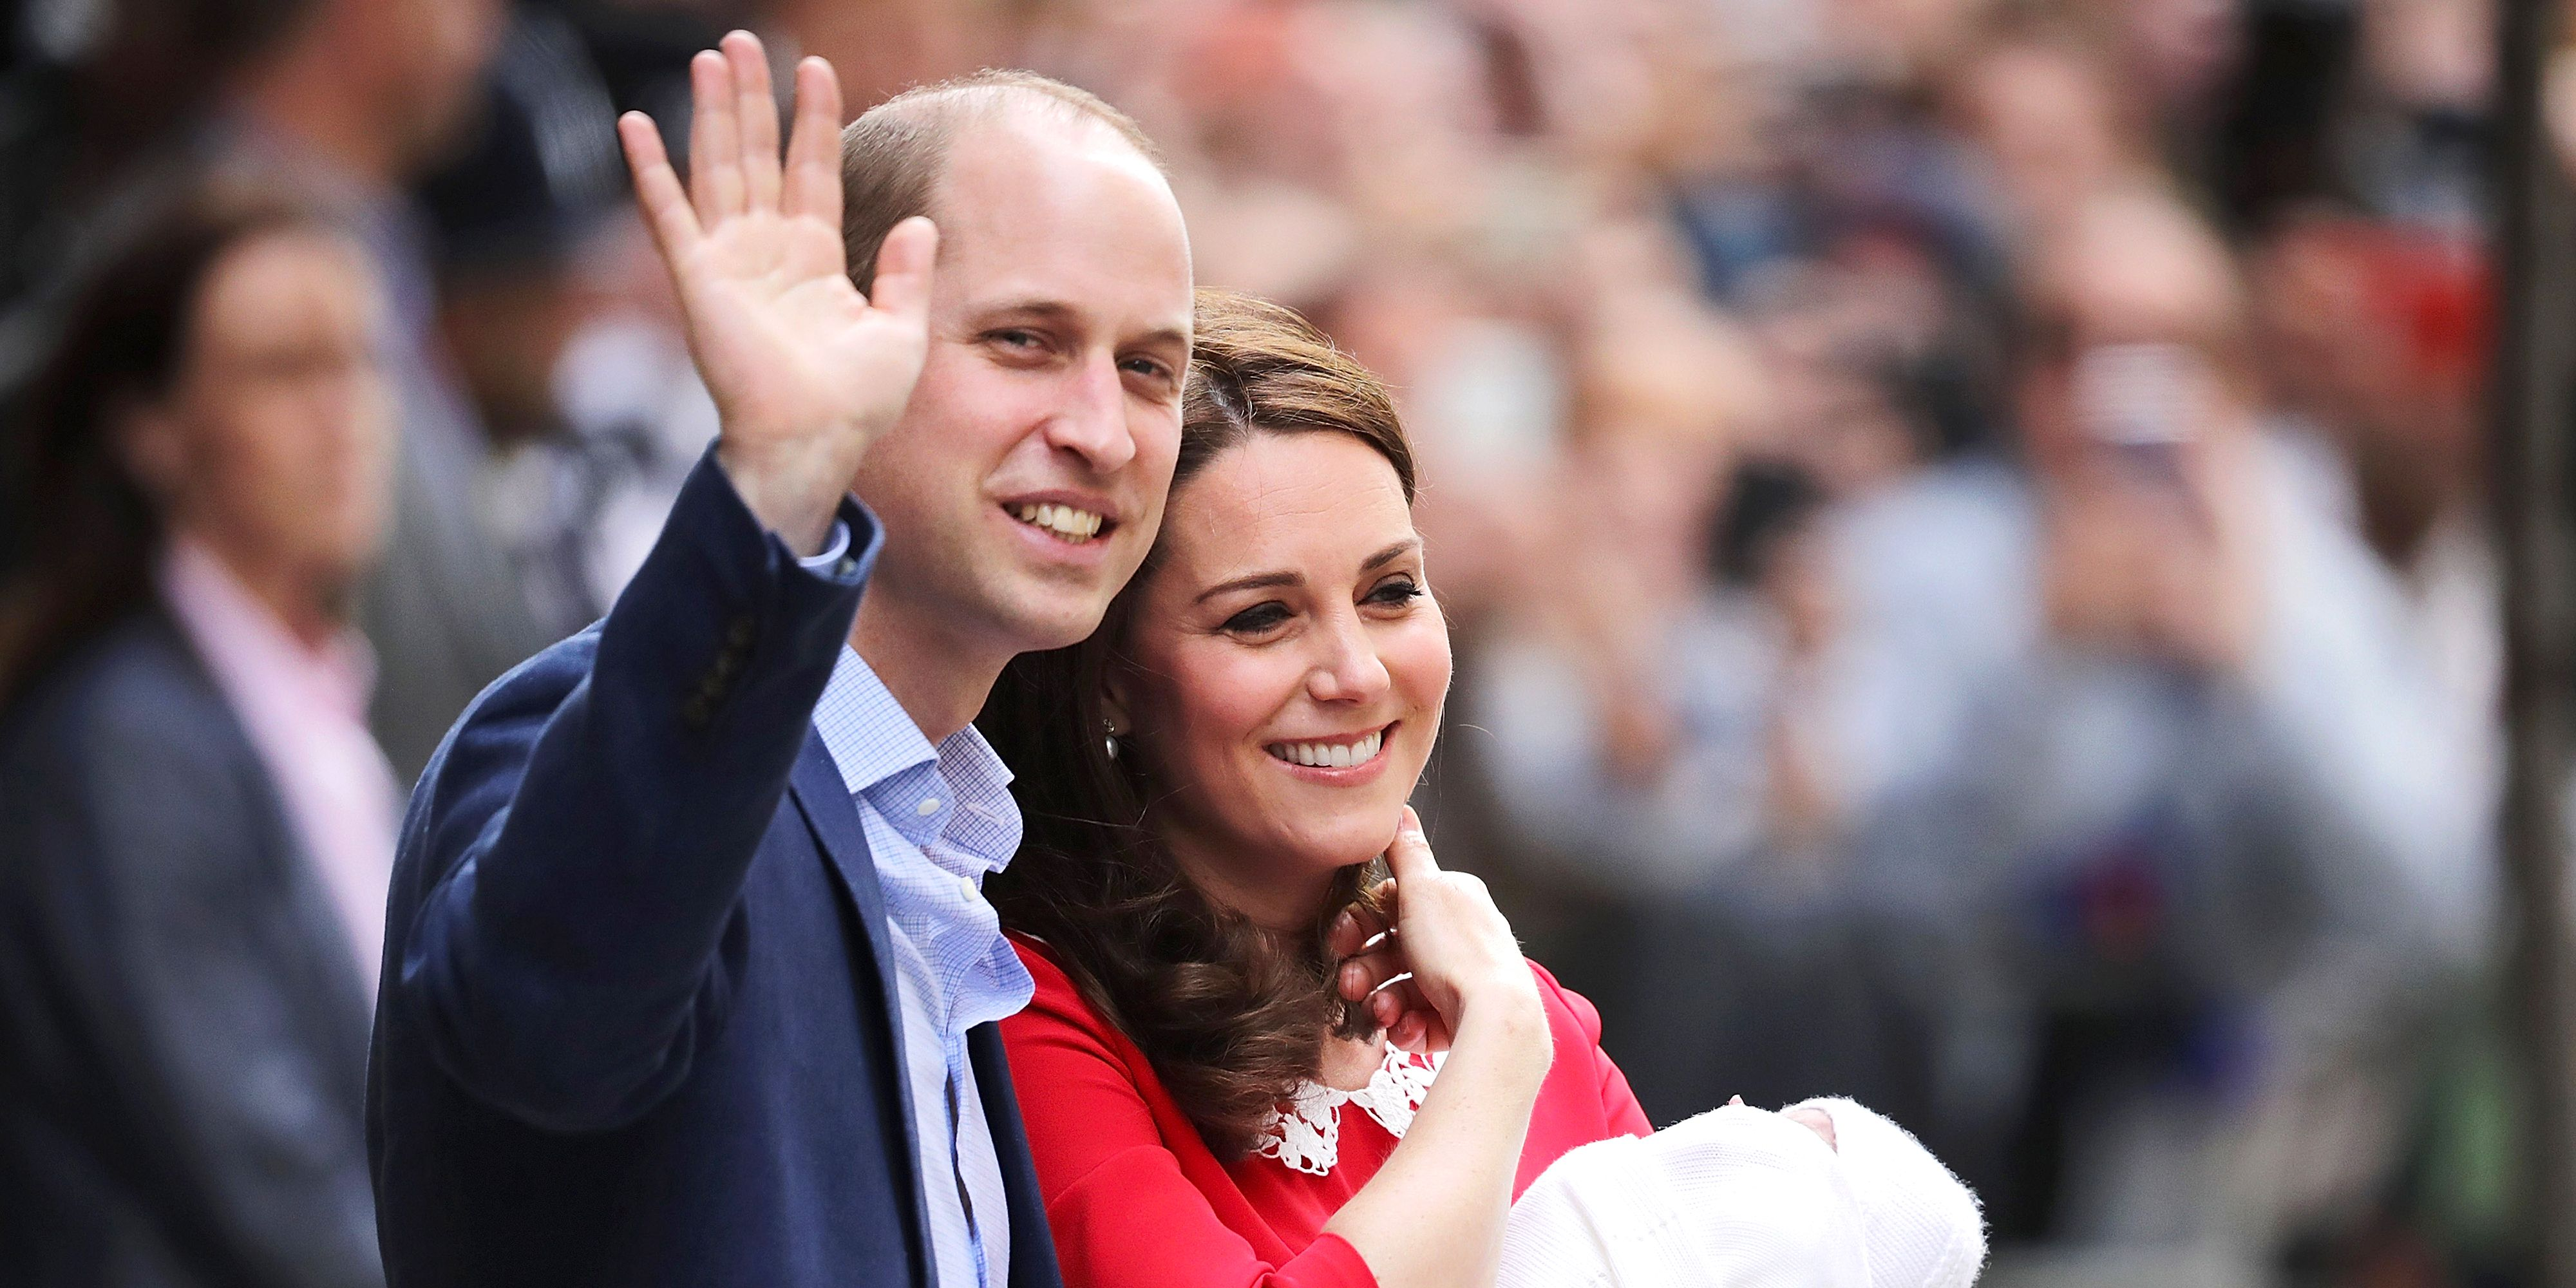 Prince William Kate Middleton royal baby waving